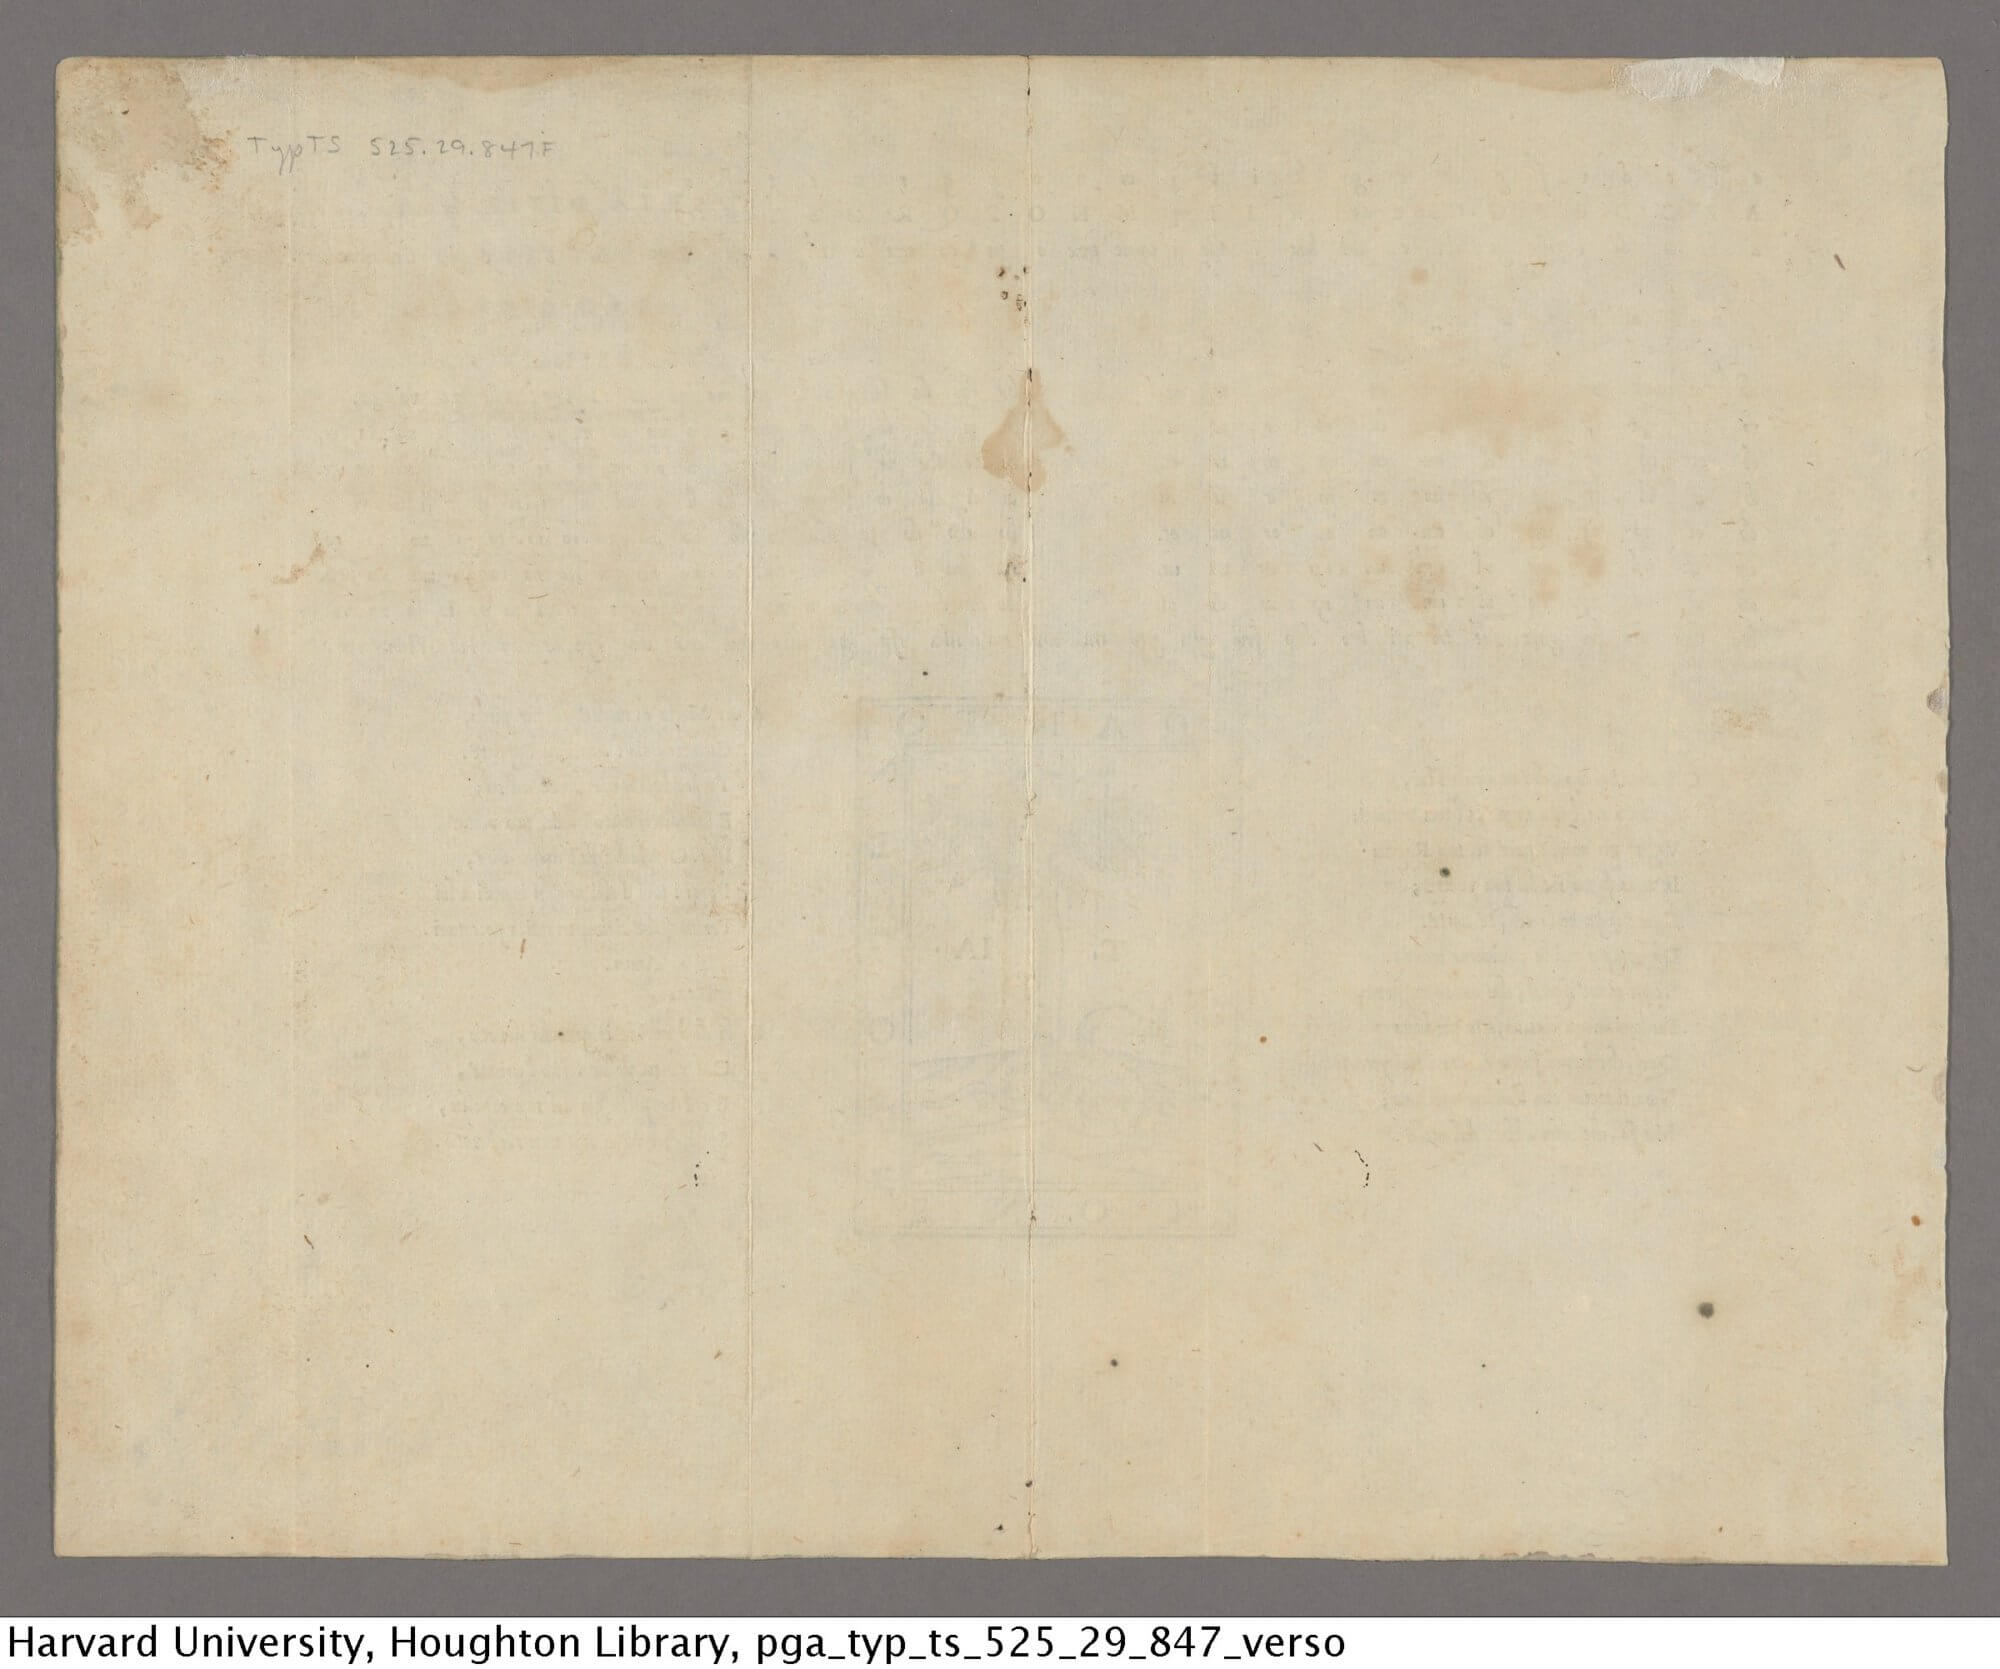 There is very little bleed-through apparent on this blank verso, although it's hard to tell if it is due to how this broadsheet was printed or how it was photographed.